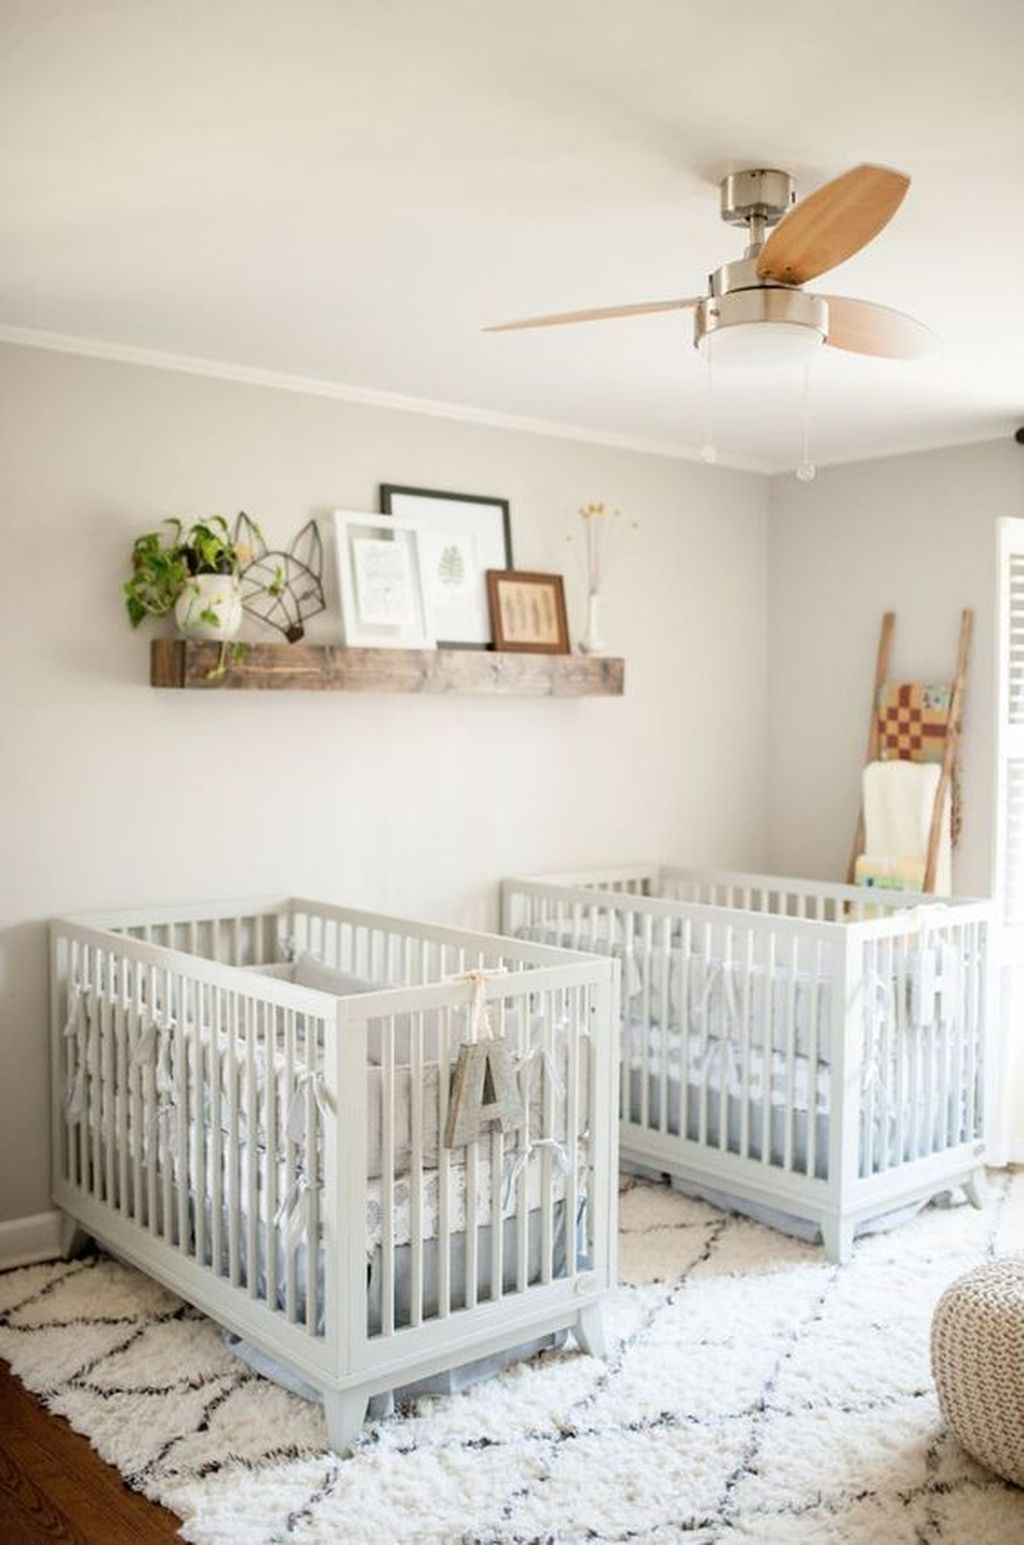 46 Unique Nursery Room Ideas For Baby Twins   Twin baby ...